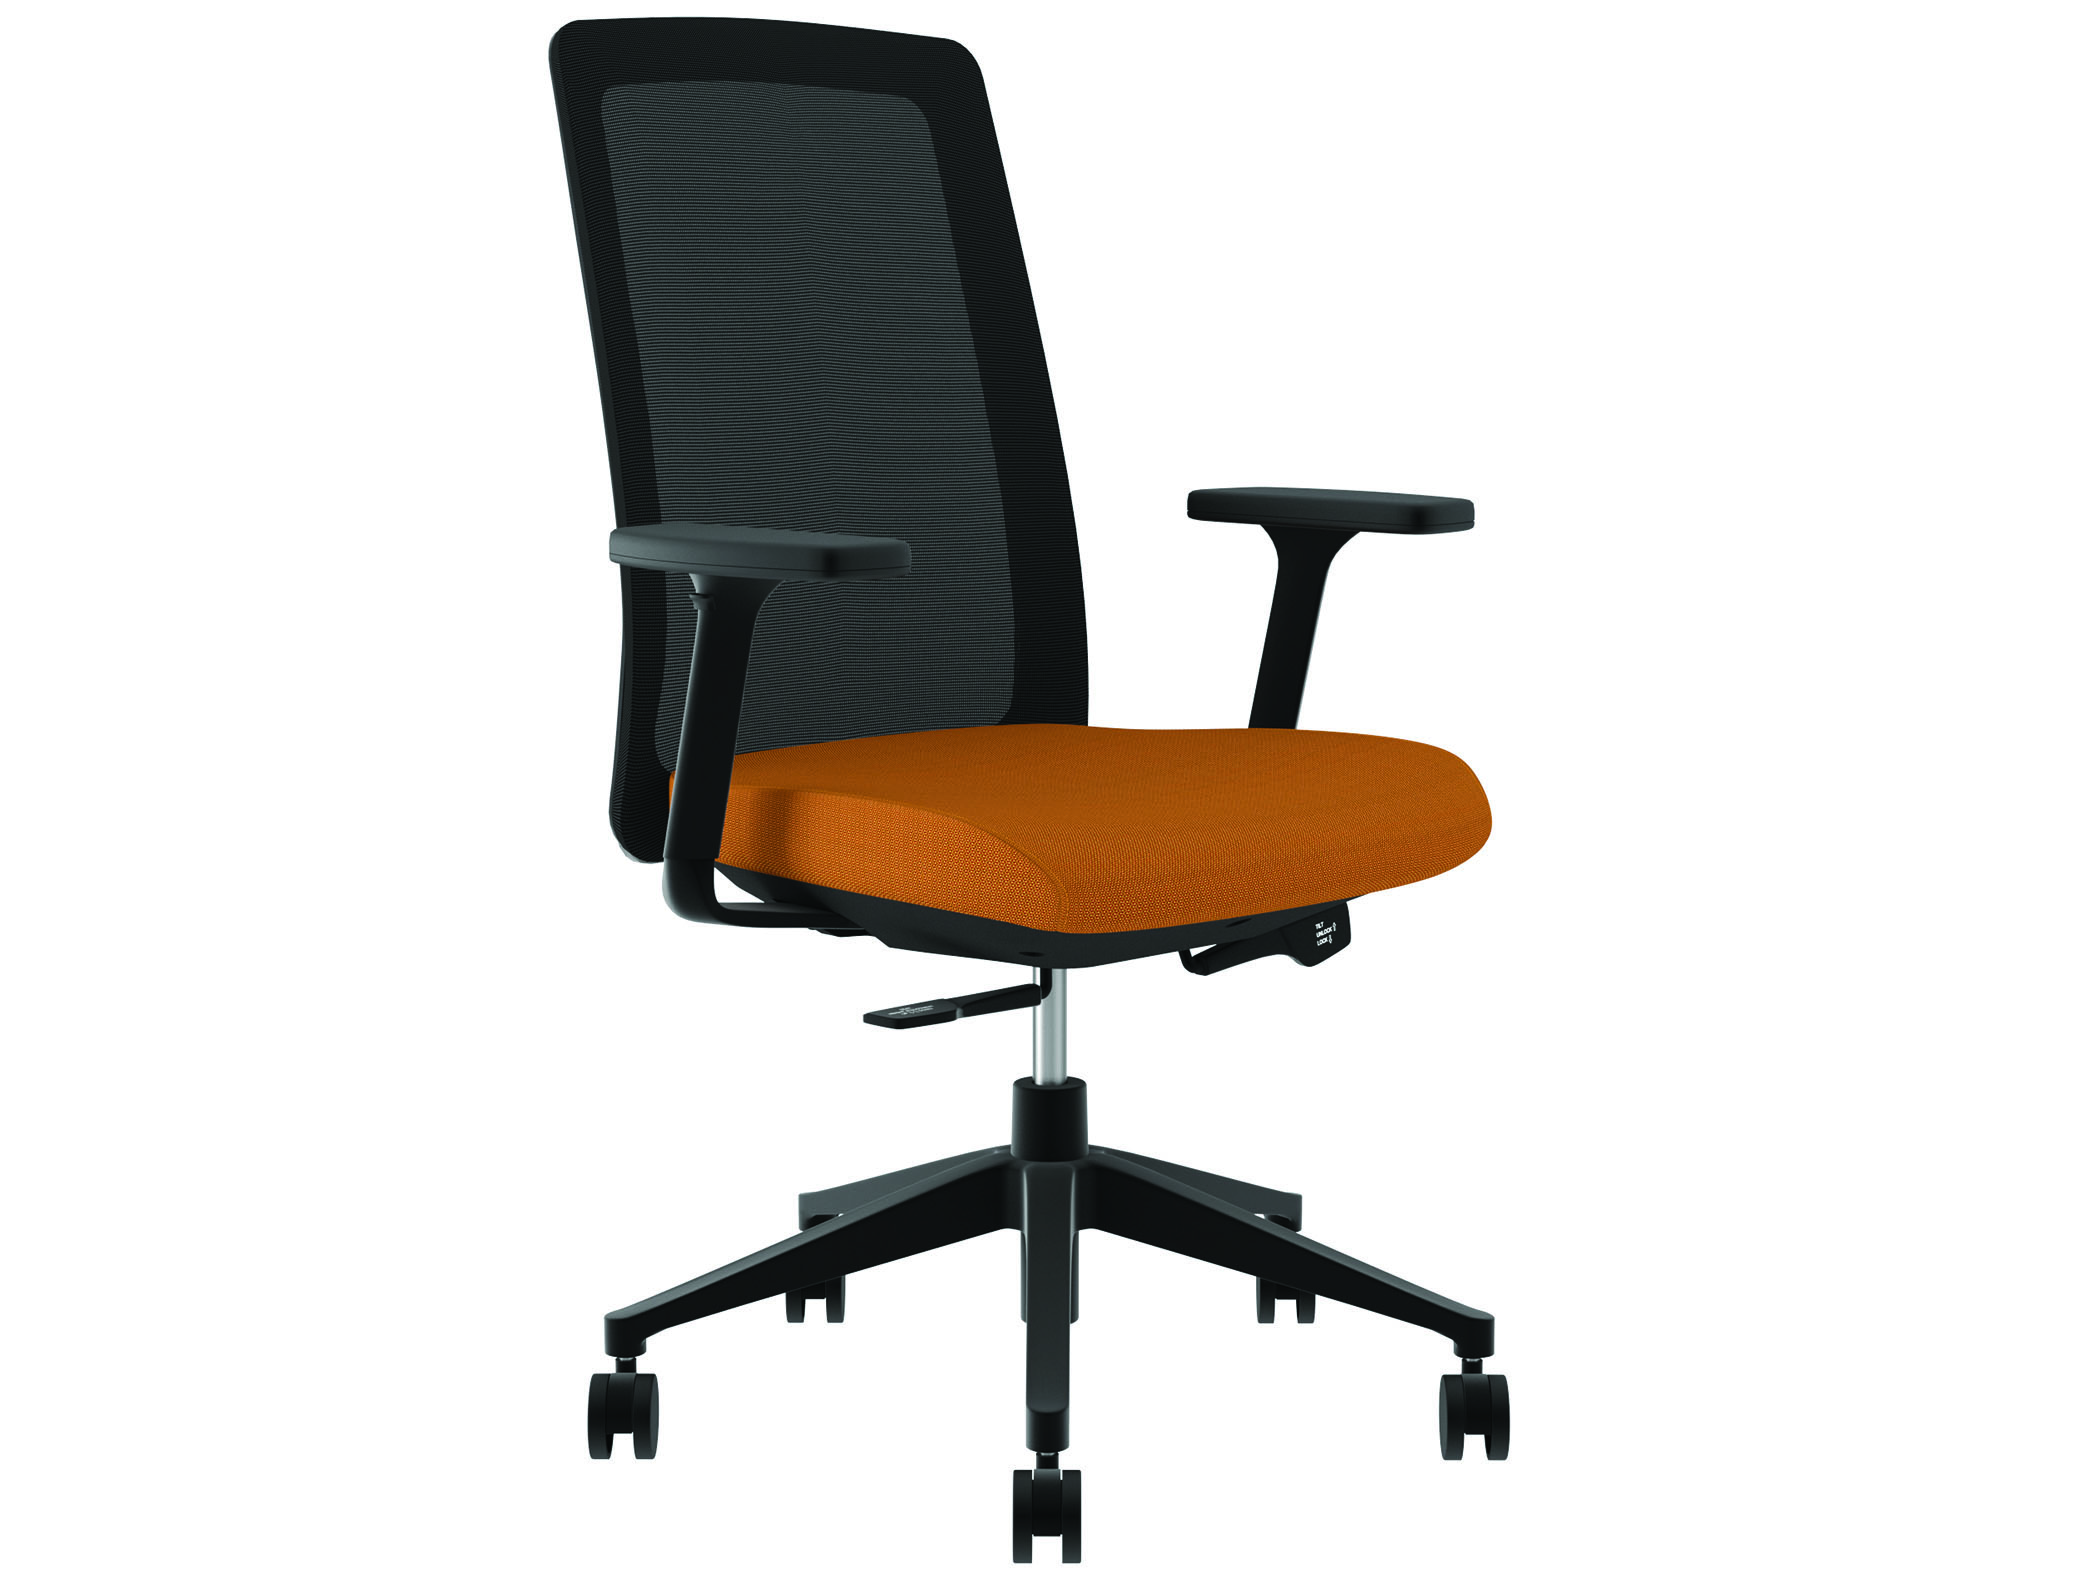 Cubicle Furniture from Compel - Bravo task chair